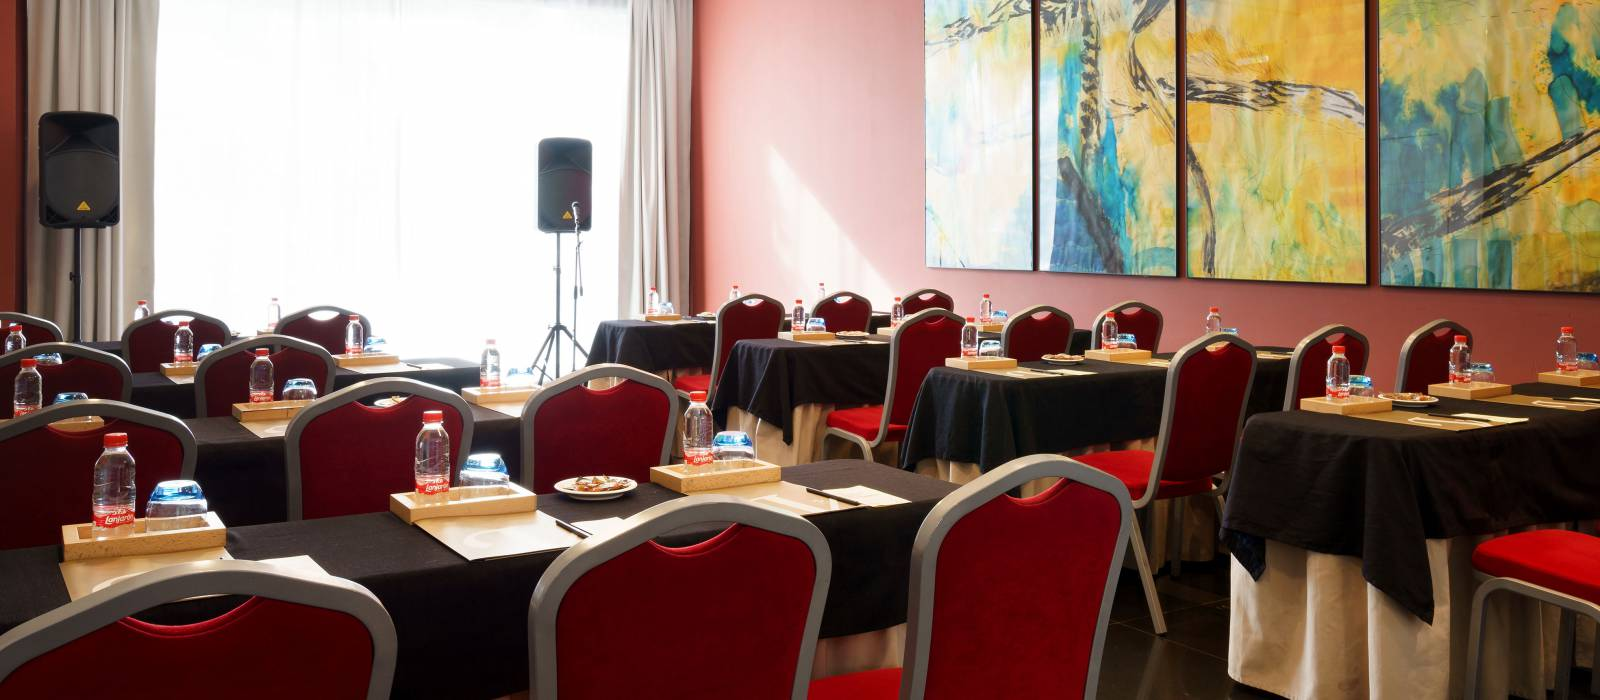 Malaga Hotel Services - Vincci Hotels - Conference Rooms